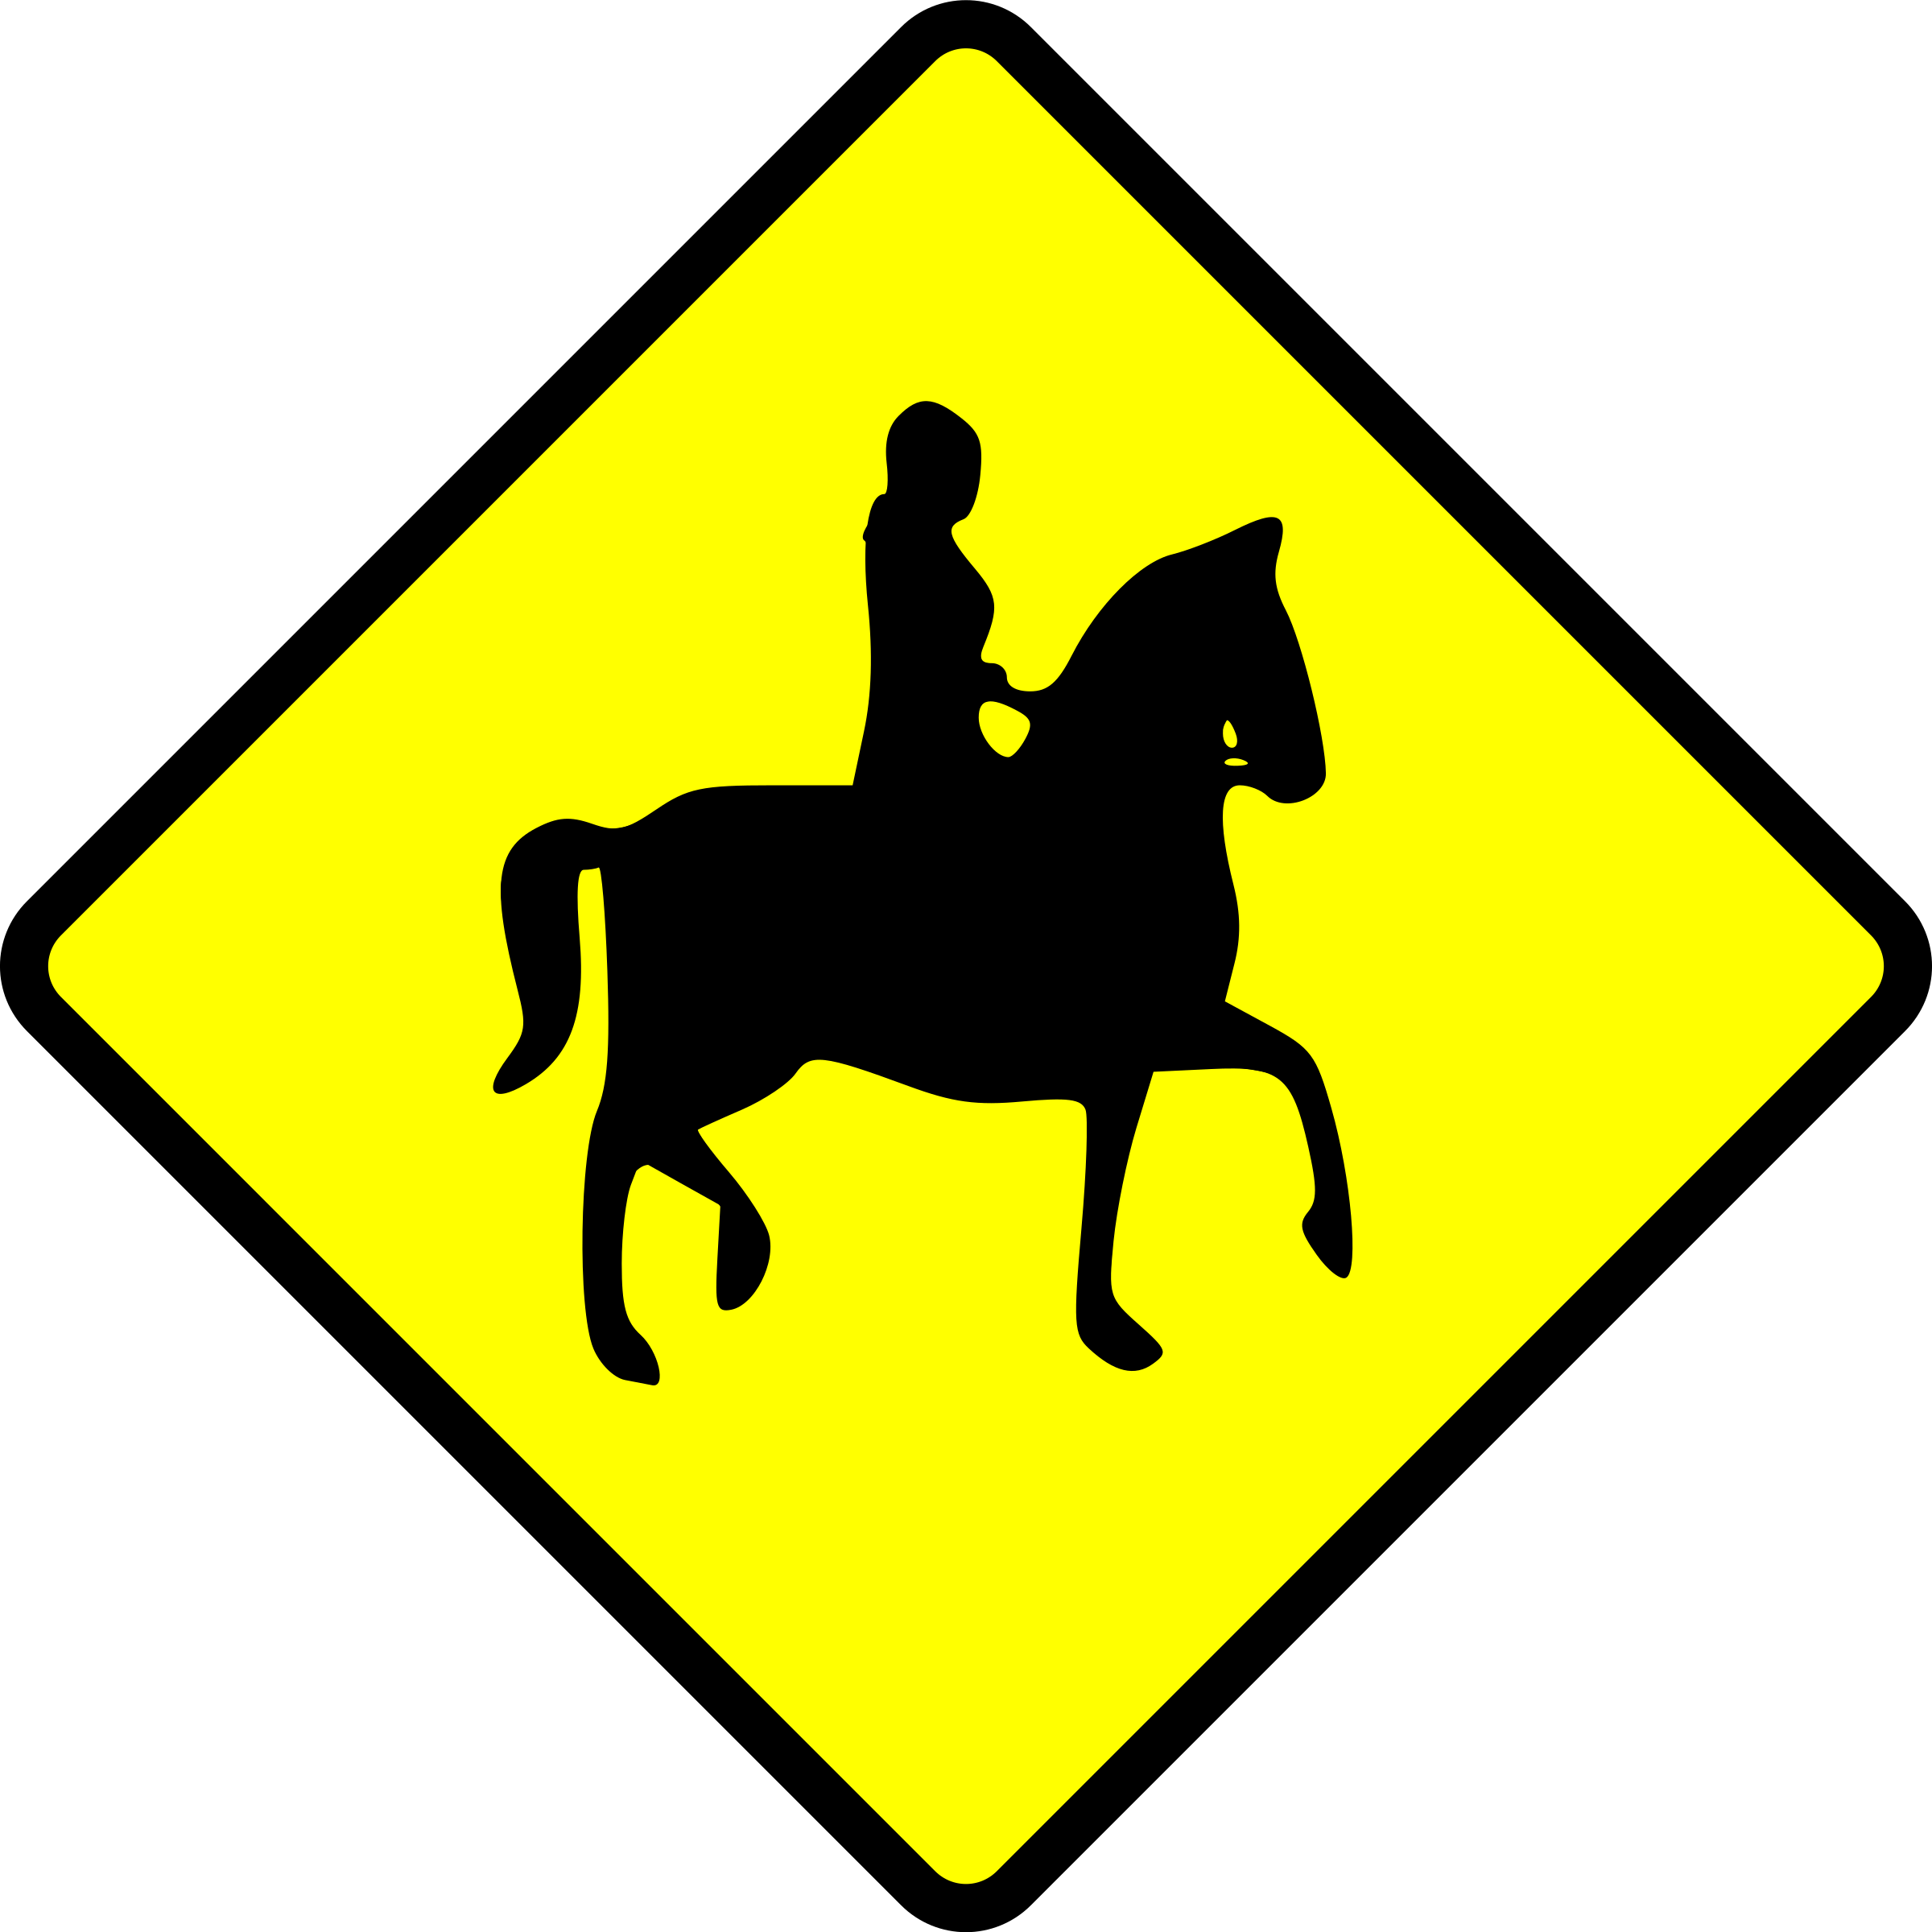 caution-horse rider by Leomarc